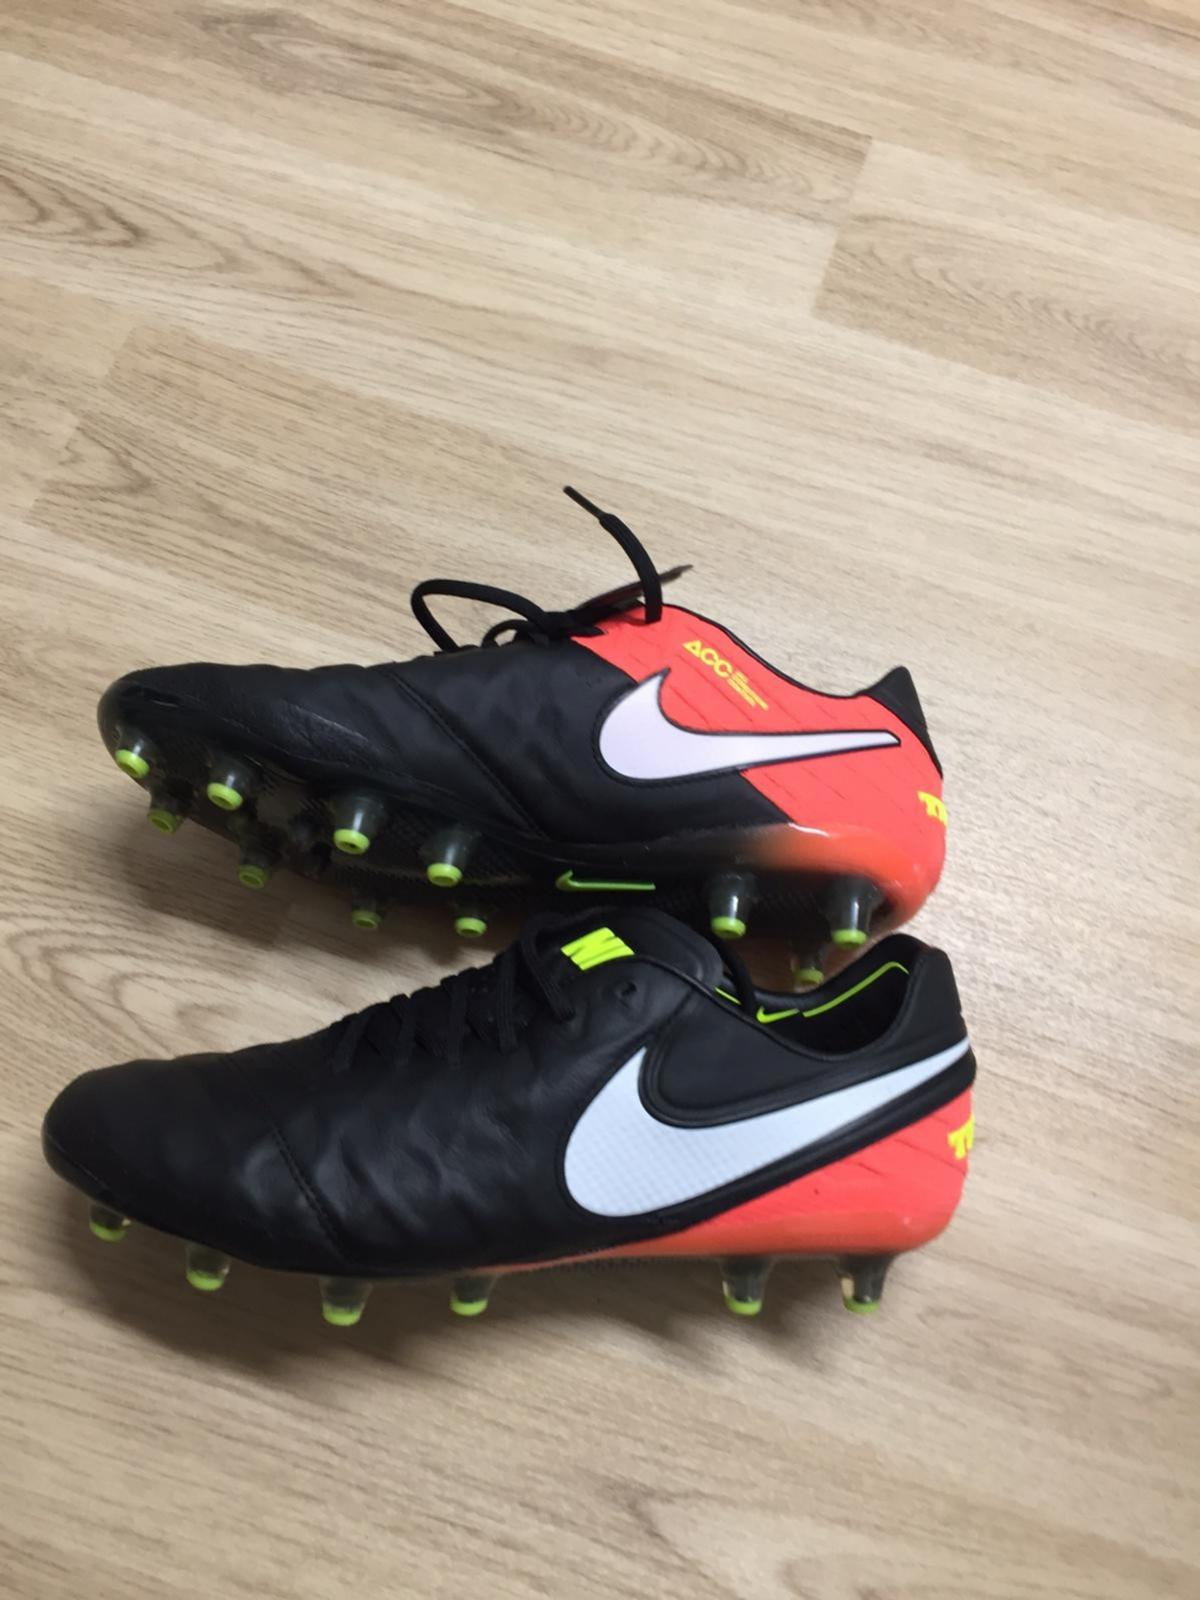 brand new a9837 6d9e8 nike tiempo legend boots in TW14 London for £65.00 for sale ...